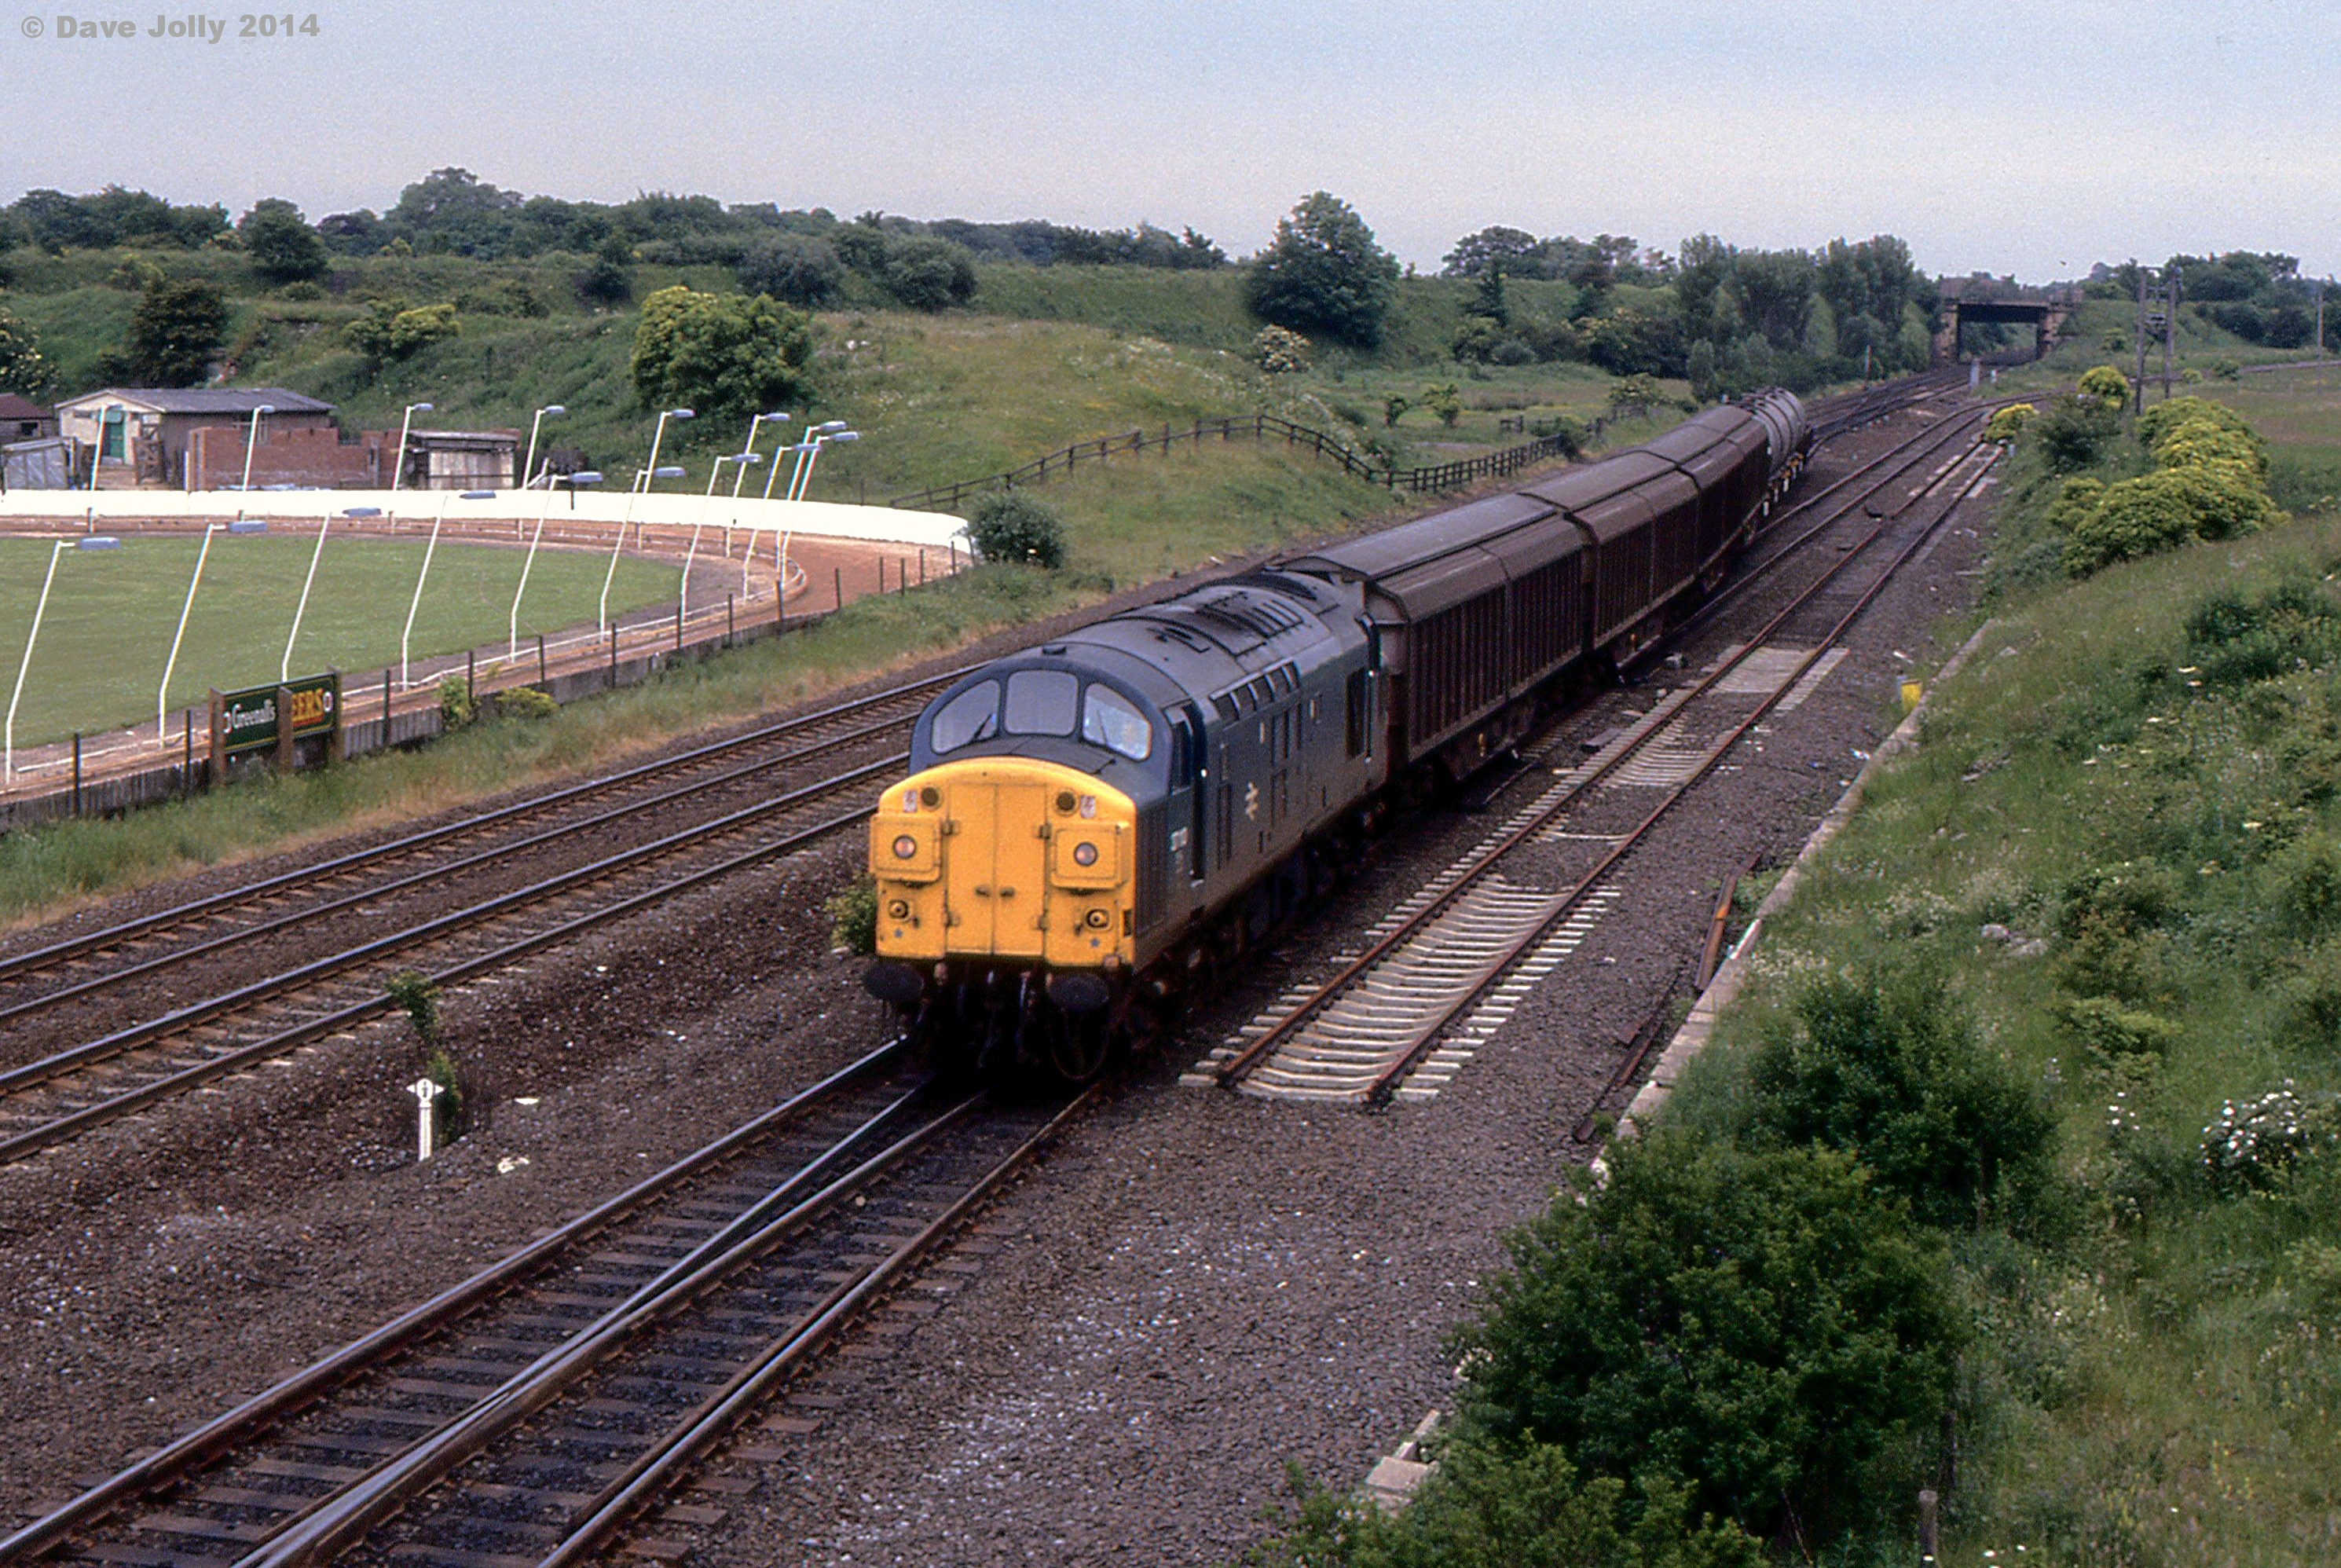 37110 at Ouston Junction with 6N64 Speedlink from Immingham to Tyne Yard 02071985. Photo Copyright Dave Jolly